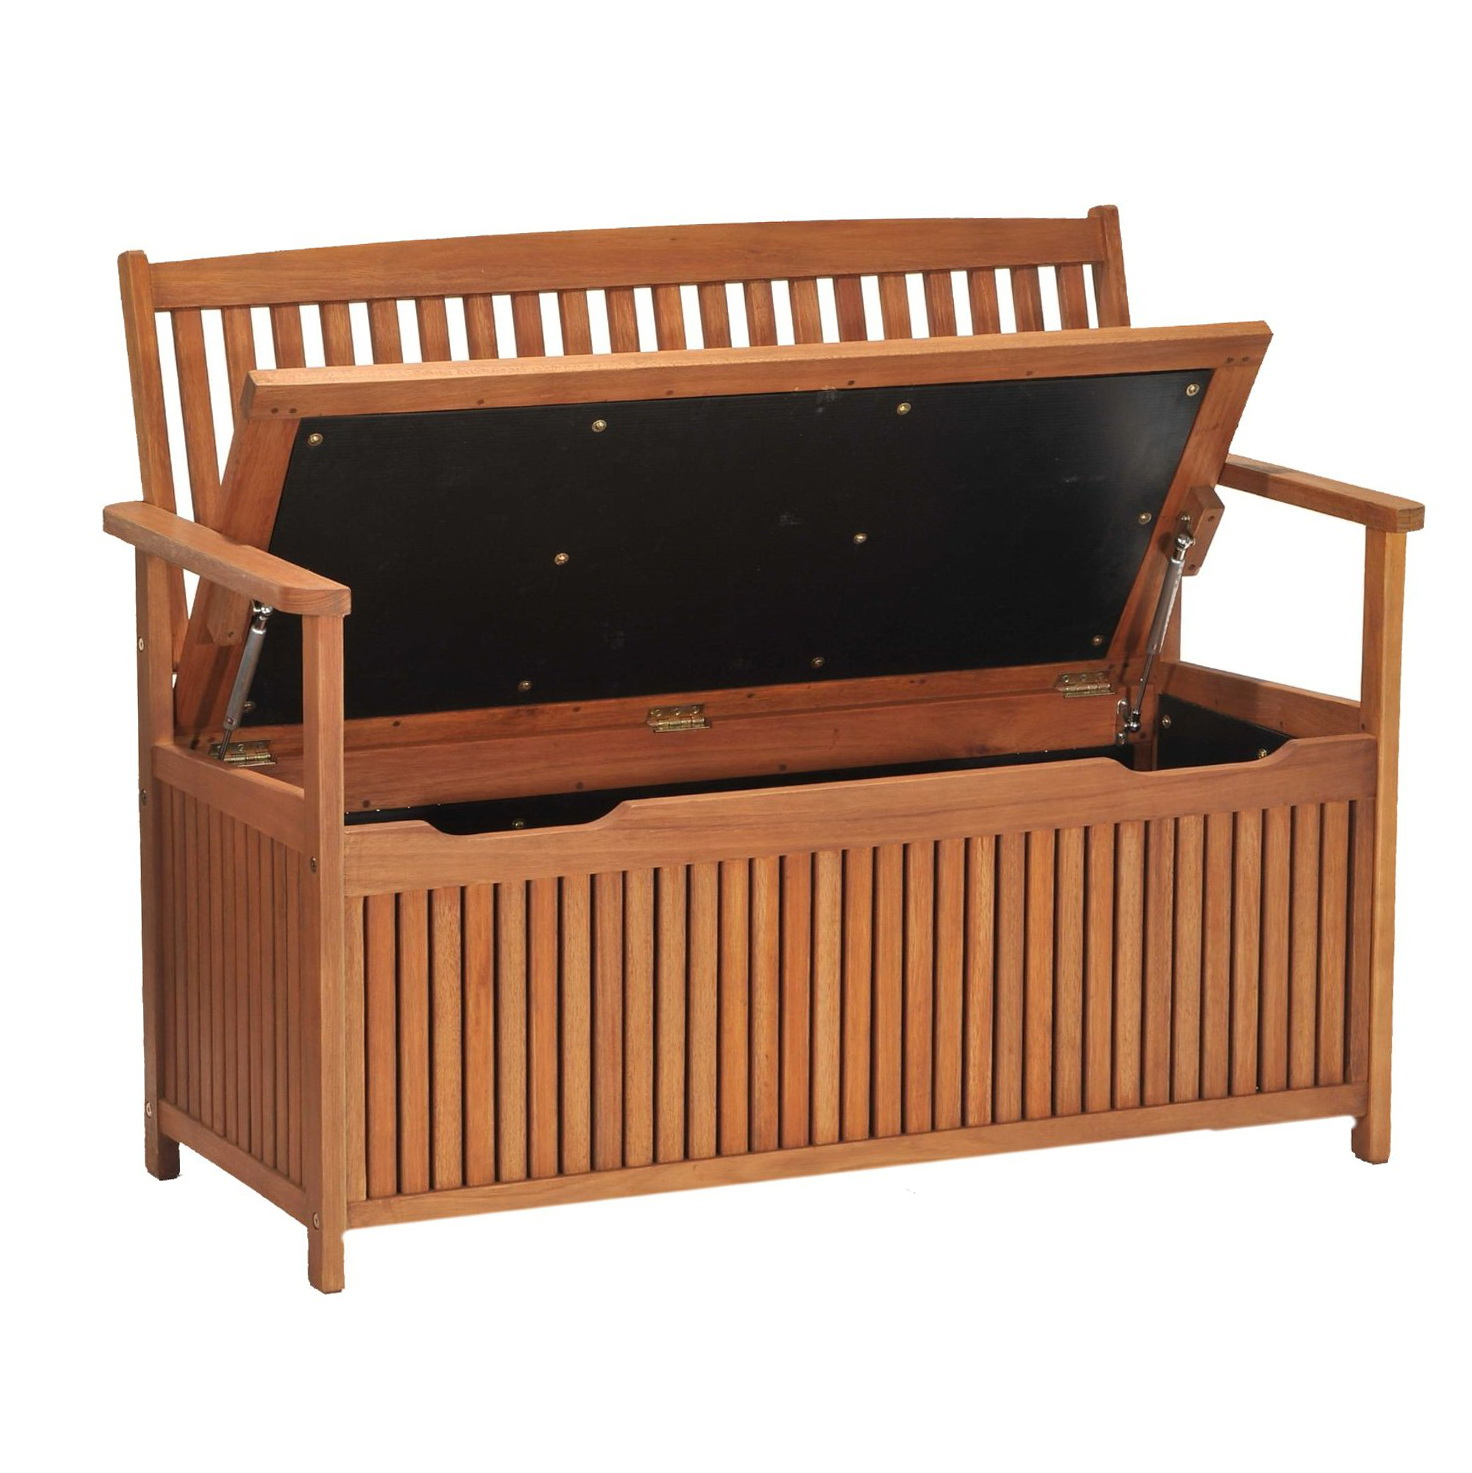 Outdoor Wooden Benches With Storage